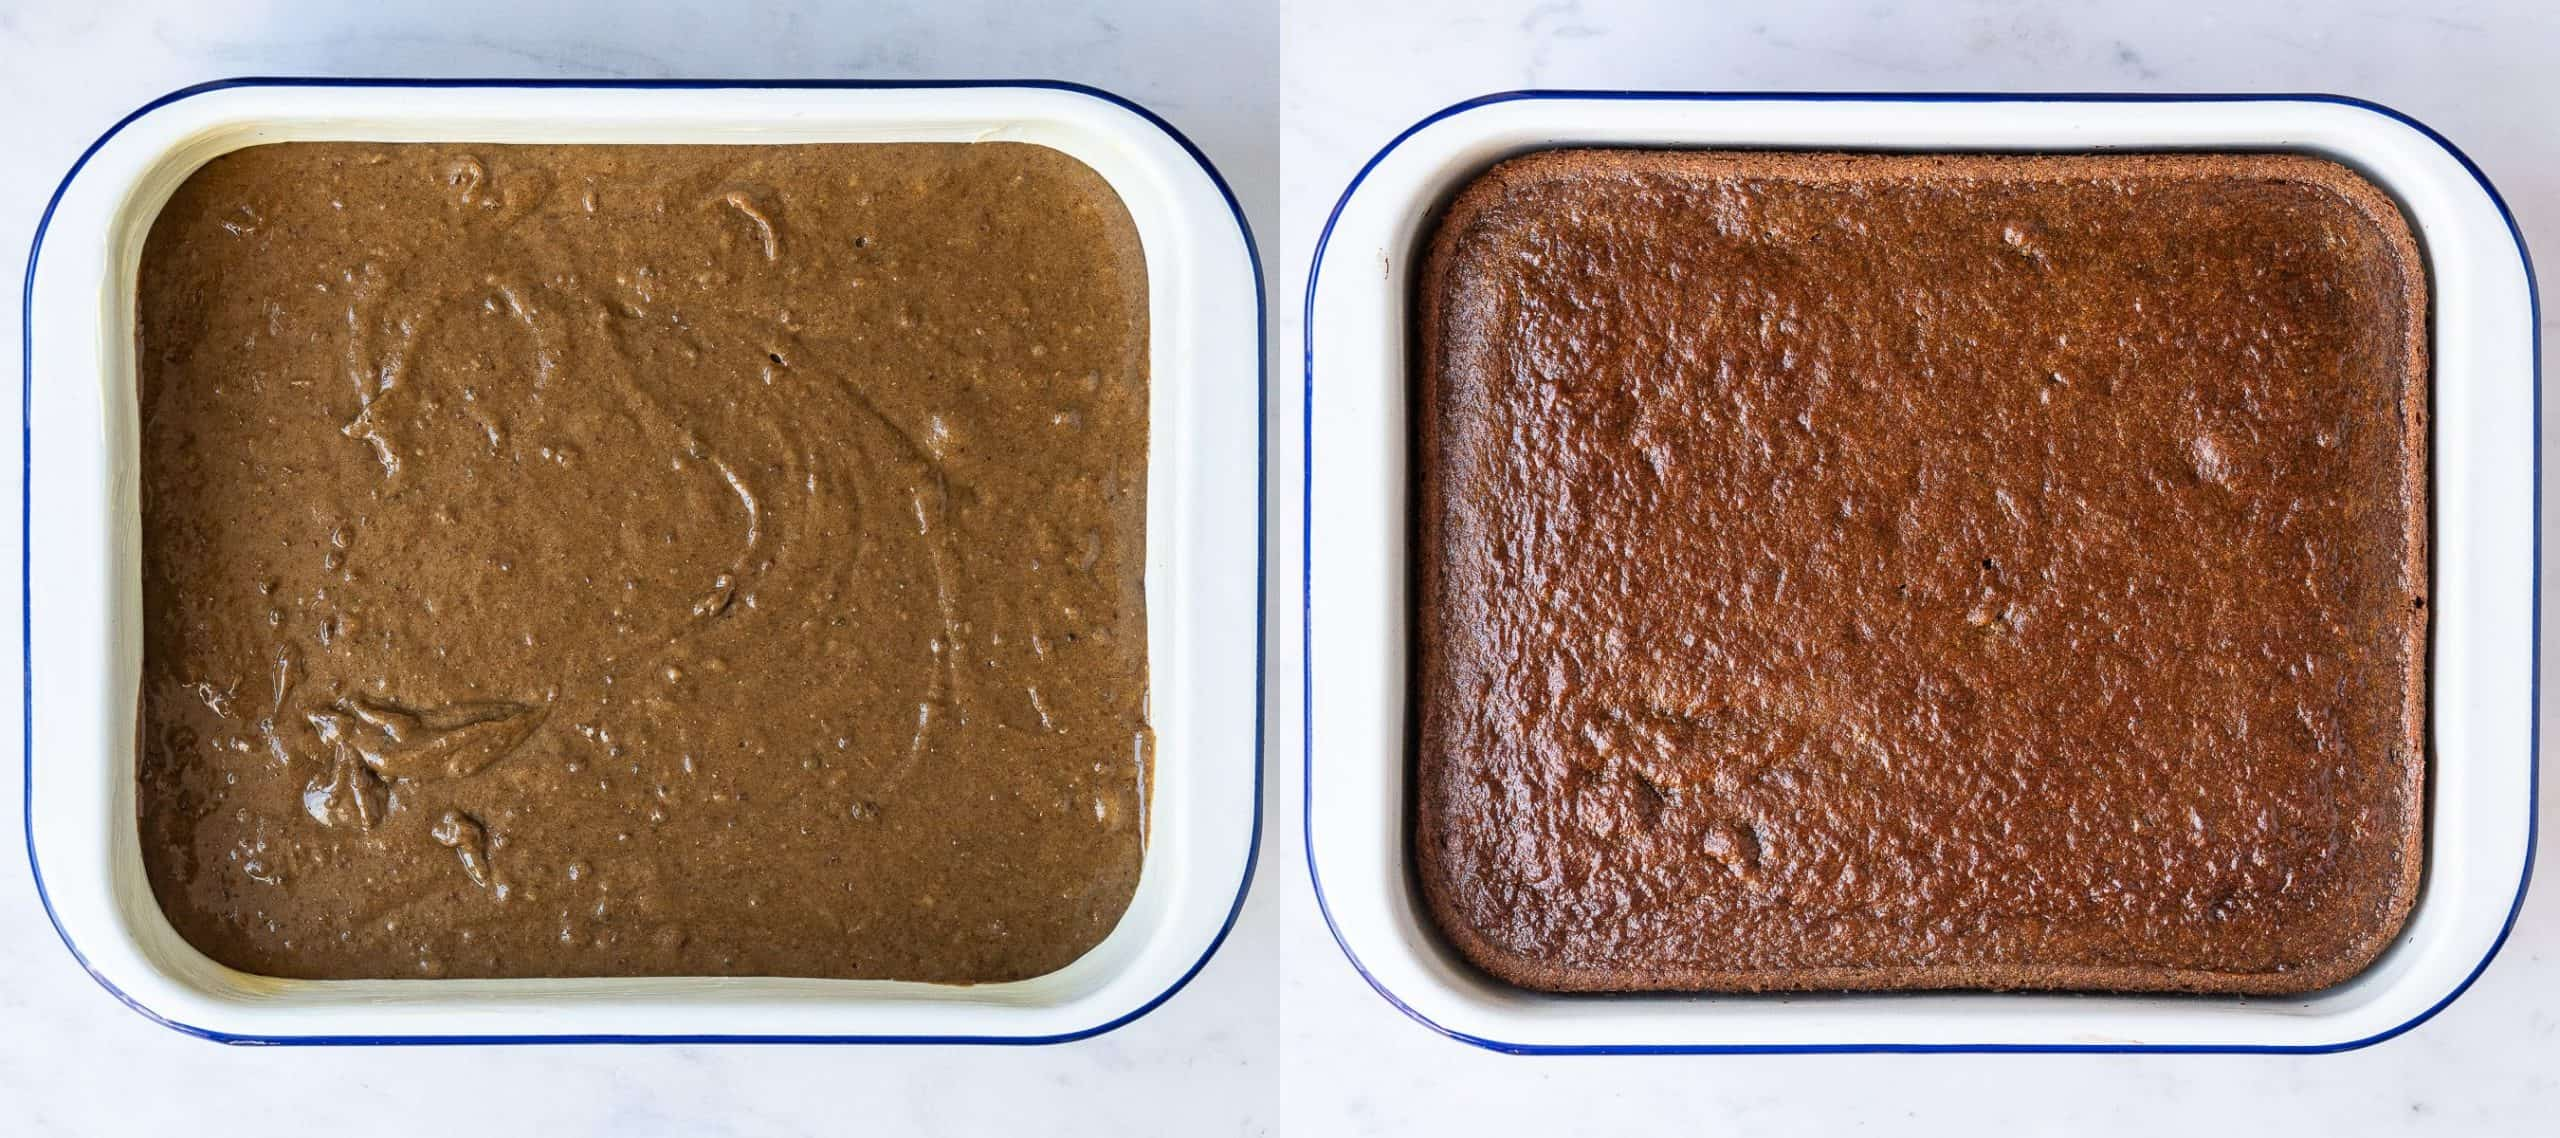 Step 3 - a two image collage of transferring the batter to the dish and baking the pudding.